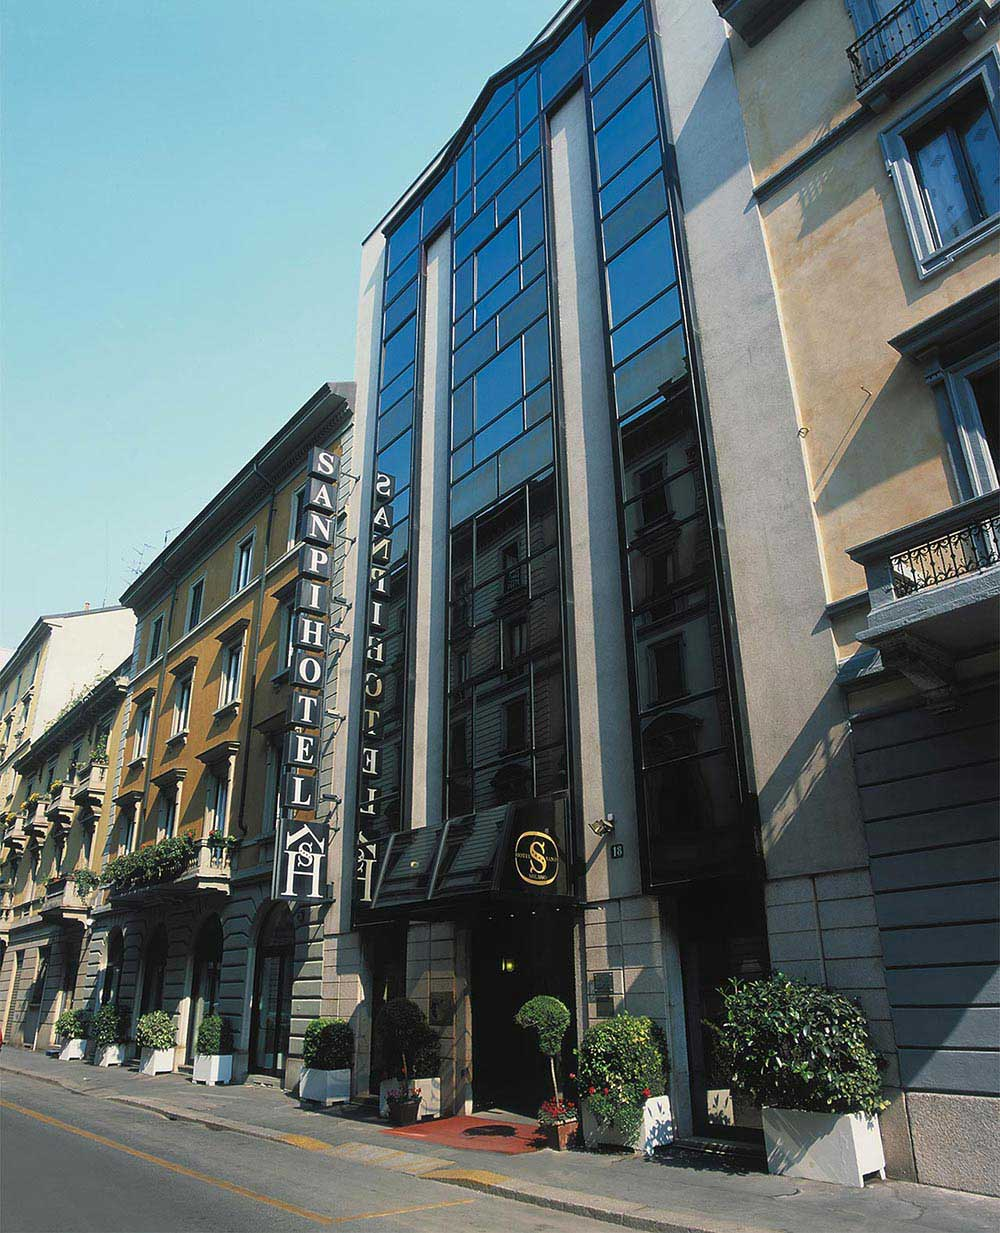 finest selection 6a8e7 f33cb Hotel Sanpi Milano | Boutique Hotel in the center of Milan